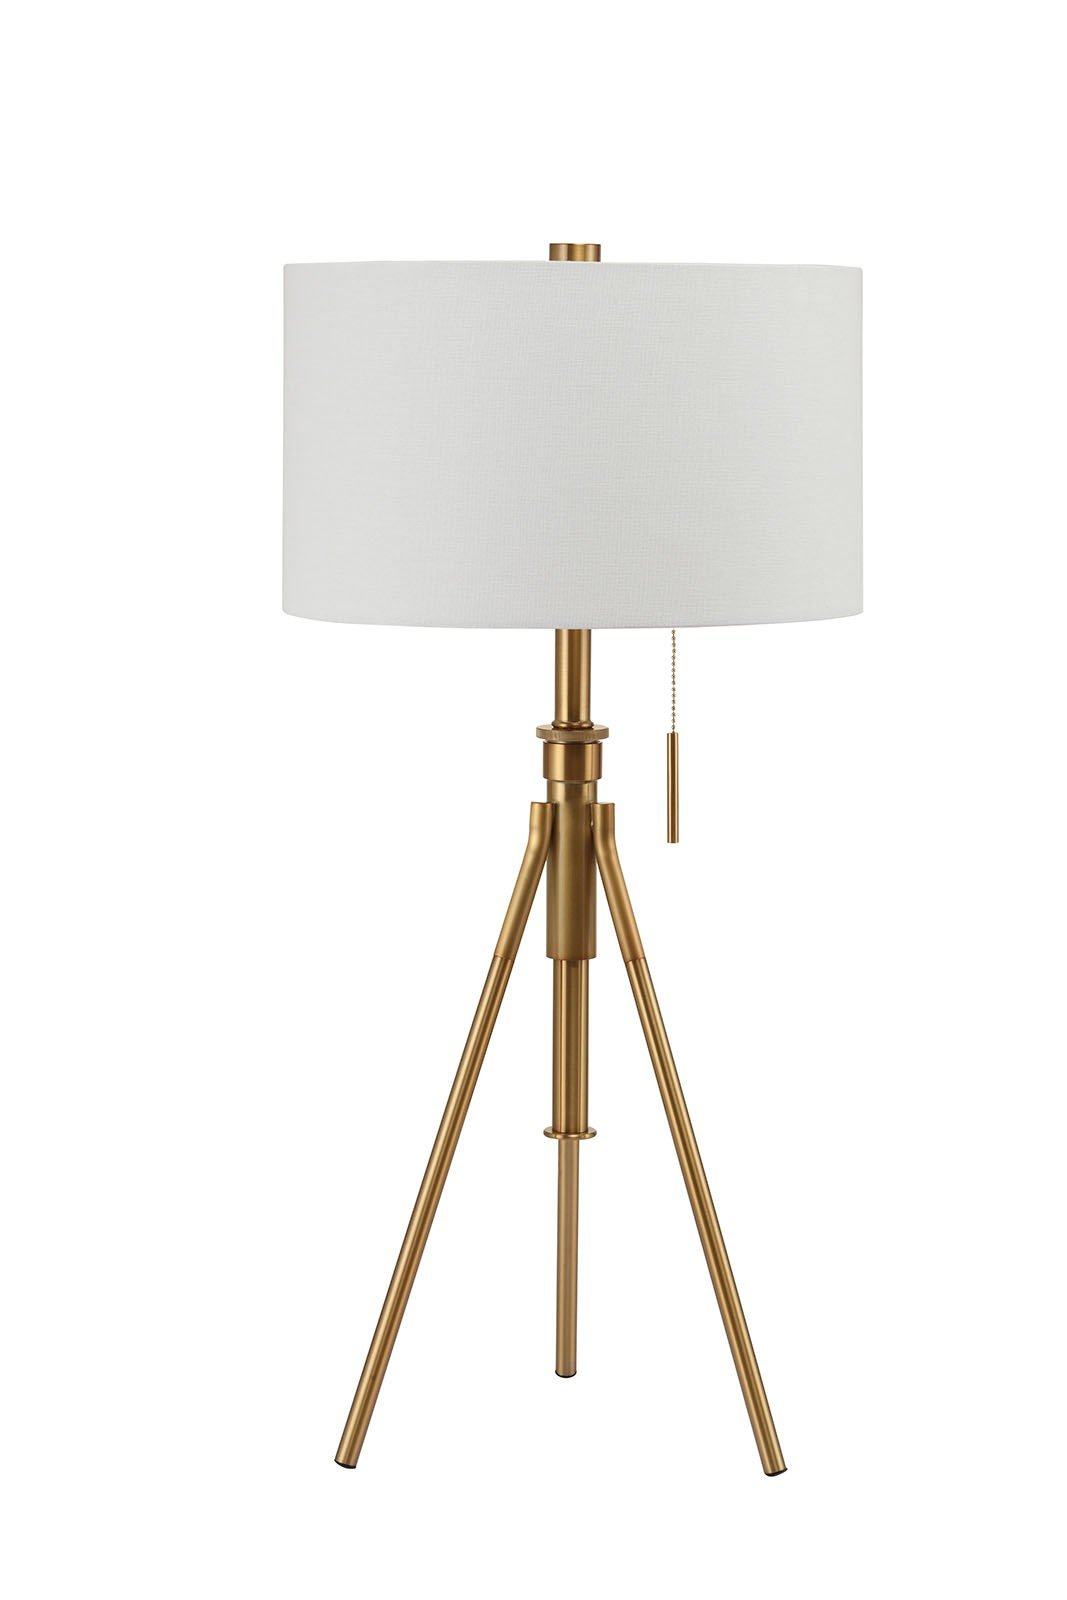 Furniture of America L731171T-GL Zaya Extendable Gold Table Lamp Miscellaneous-Others